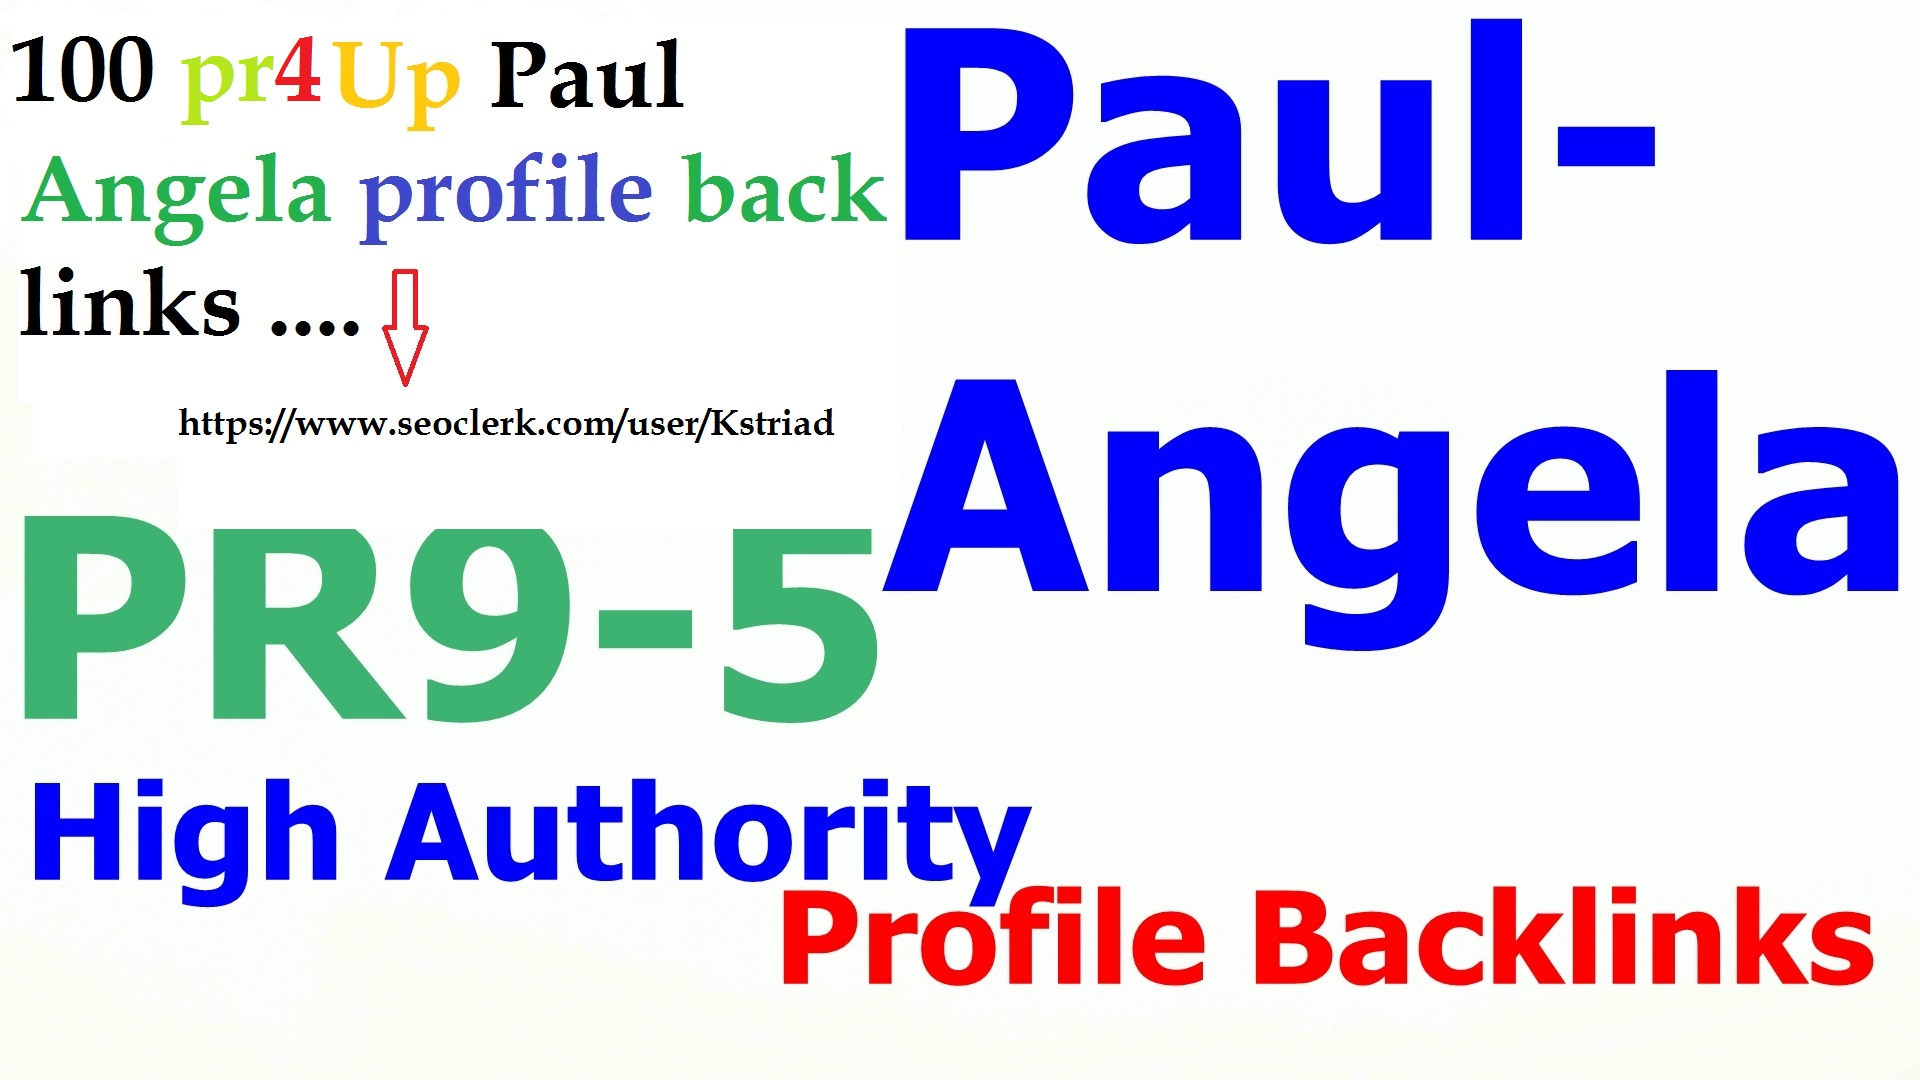 Manually create 100 Pr4 Up paul angela backinks